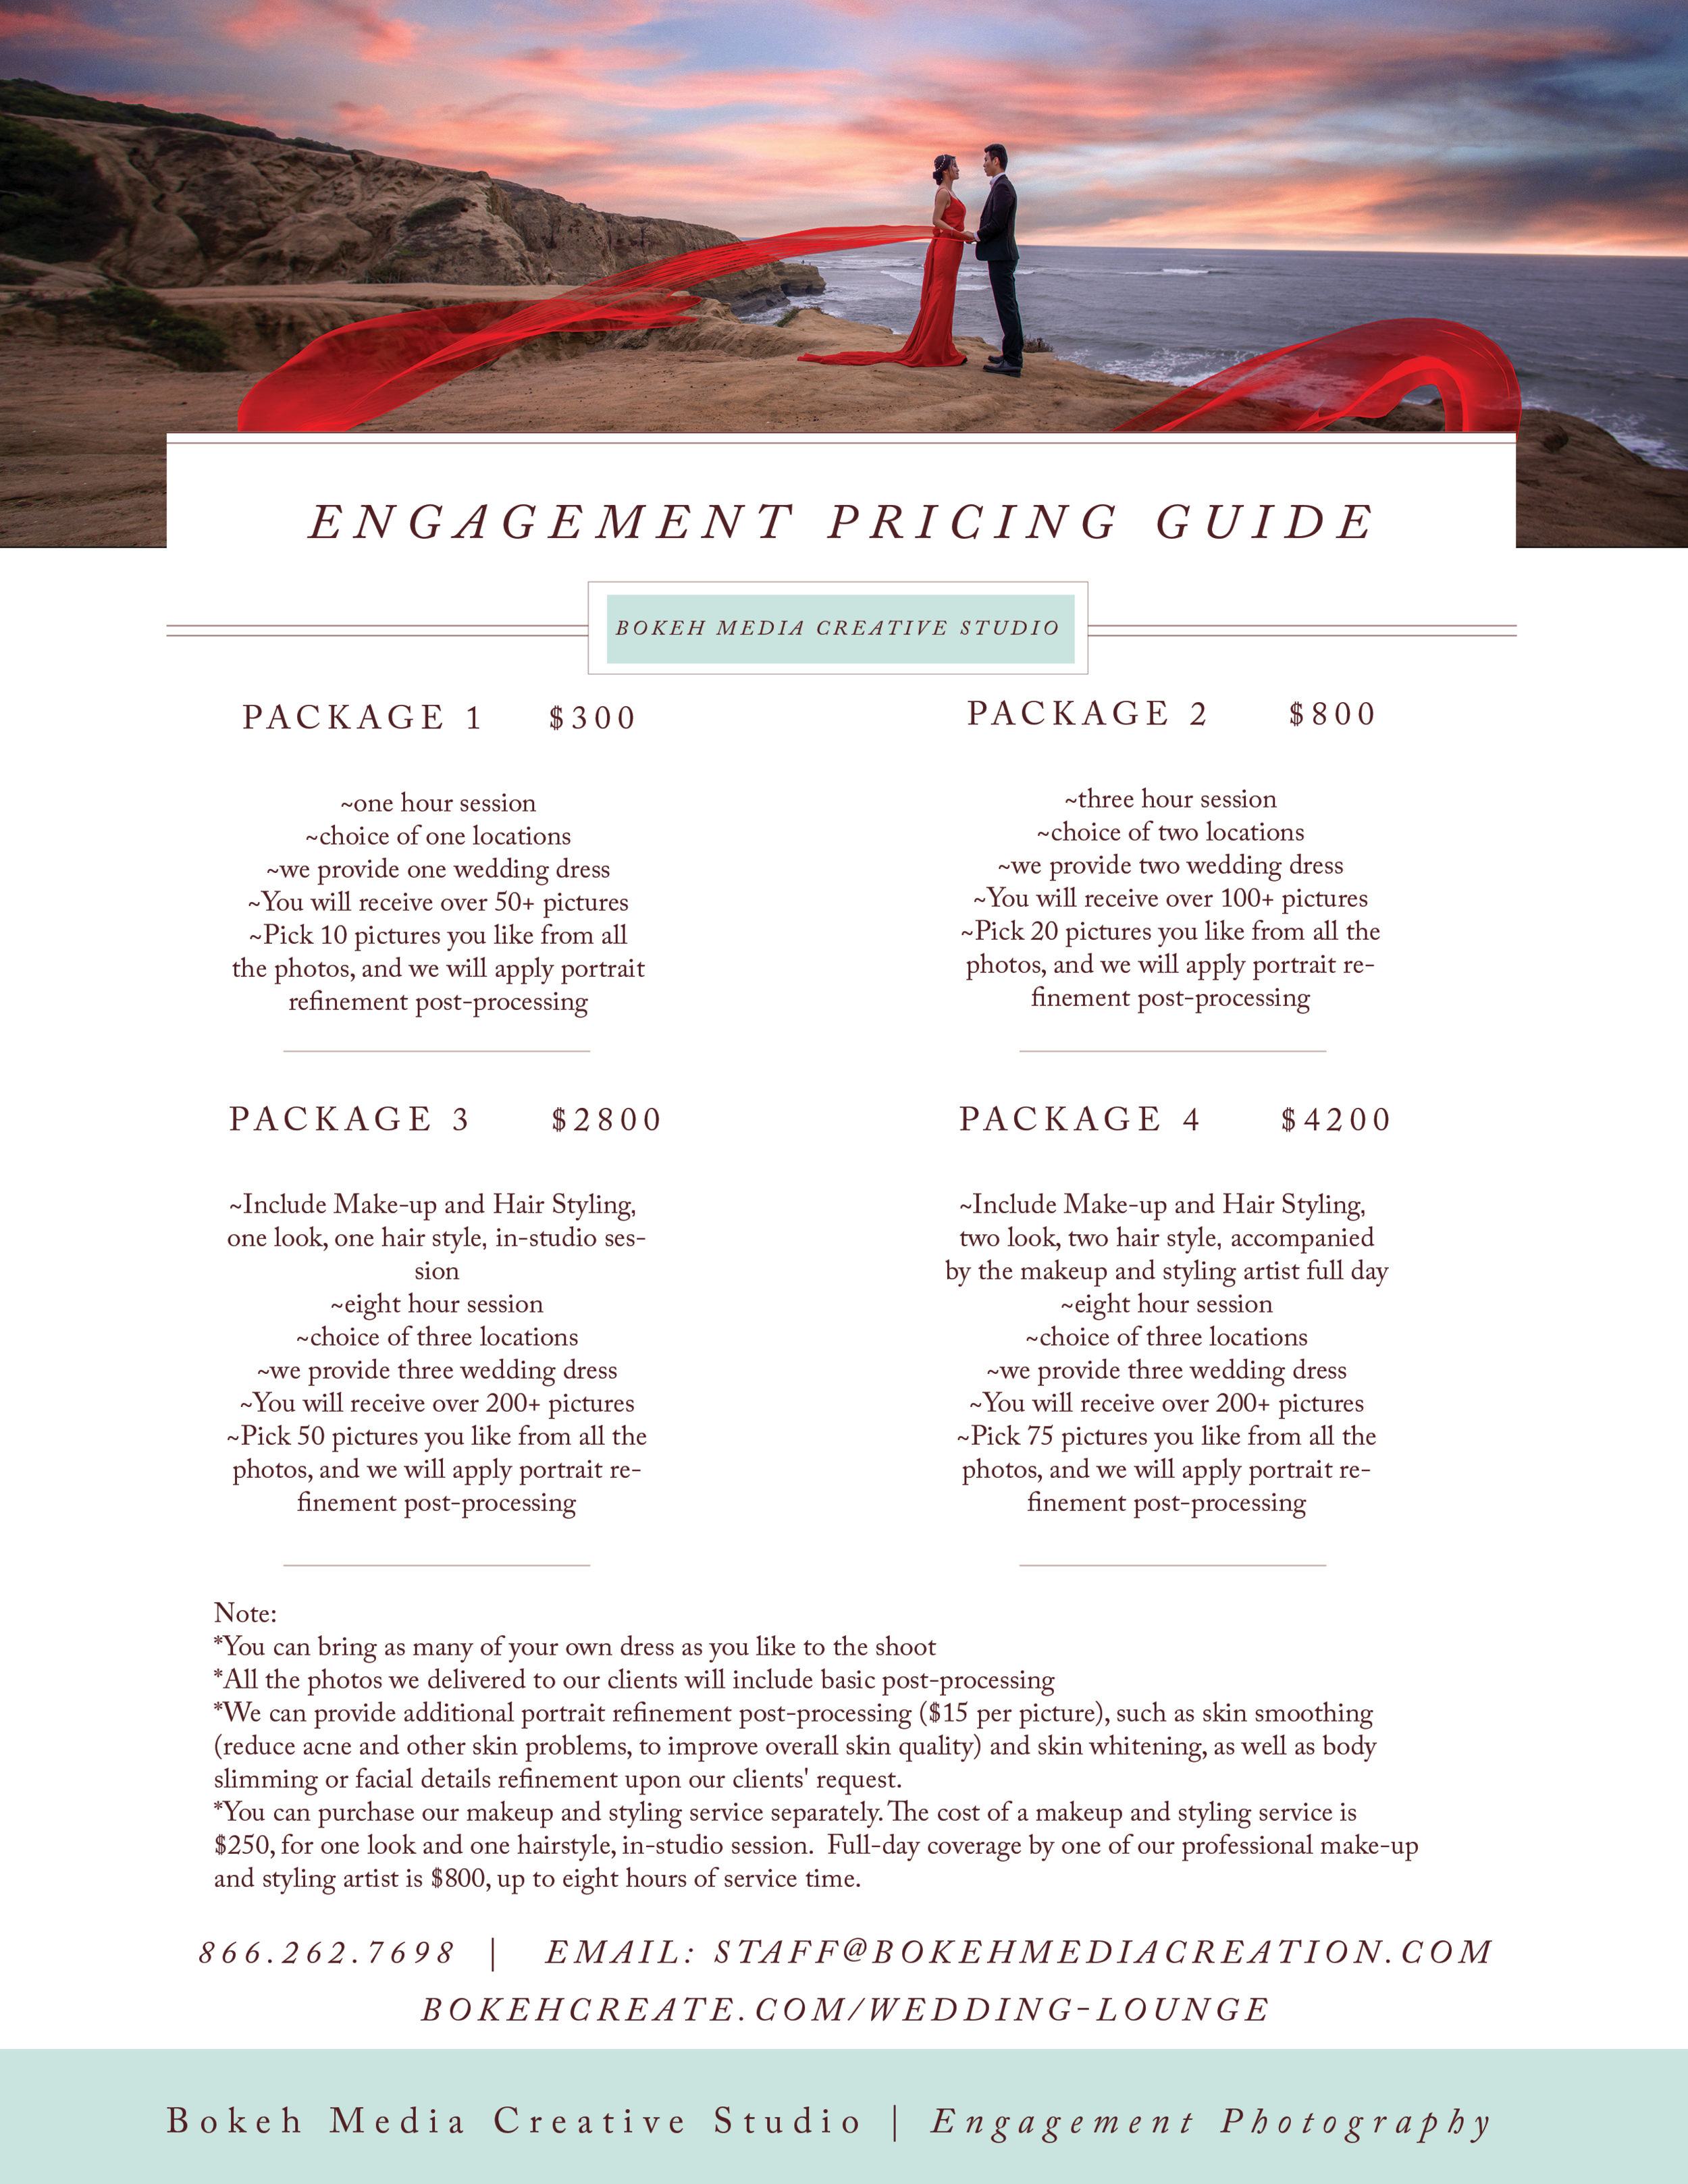 Bokeh Media Engagement Pricing Guide.jpg